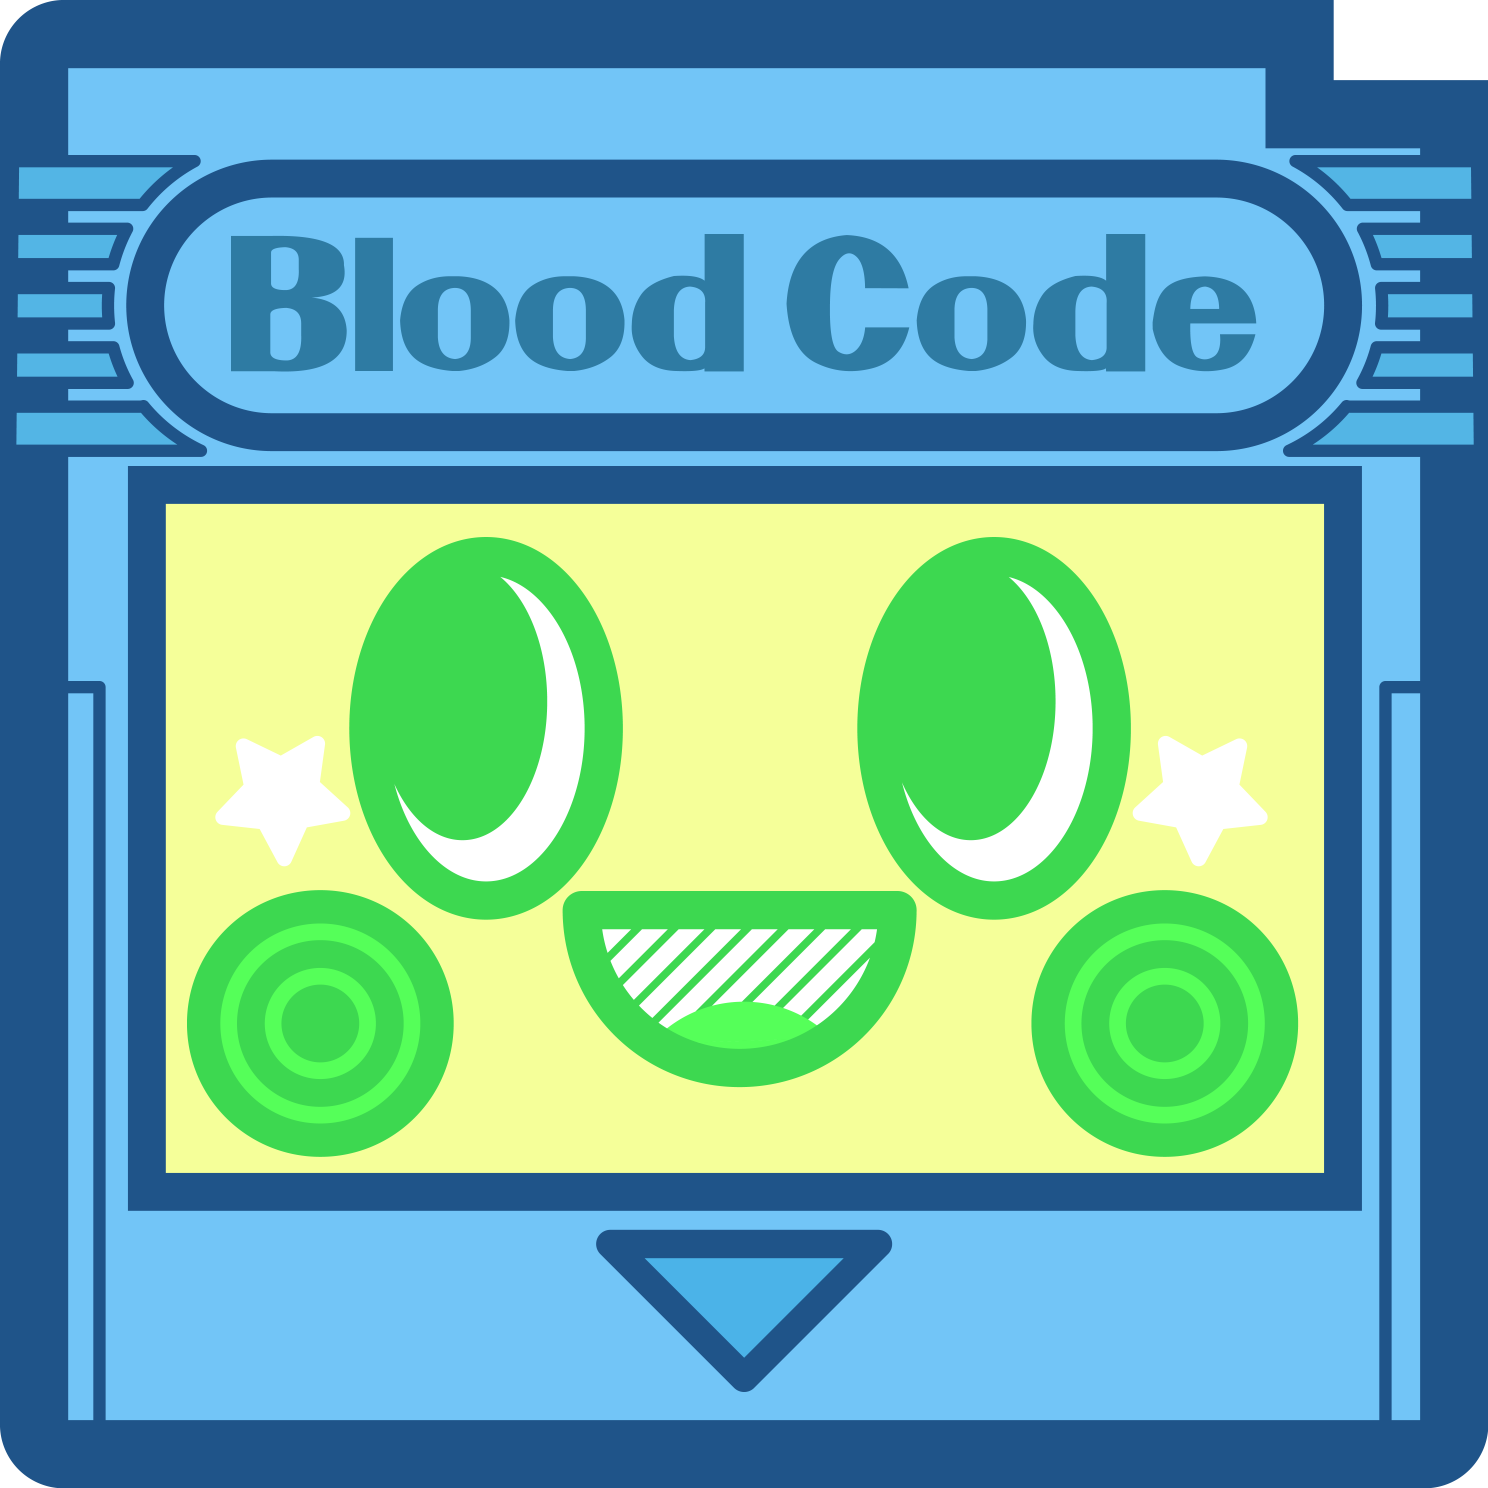 Blood Code Stickers messages sticker-9